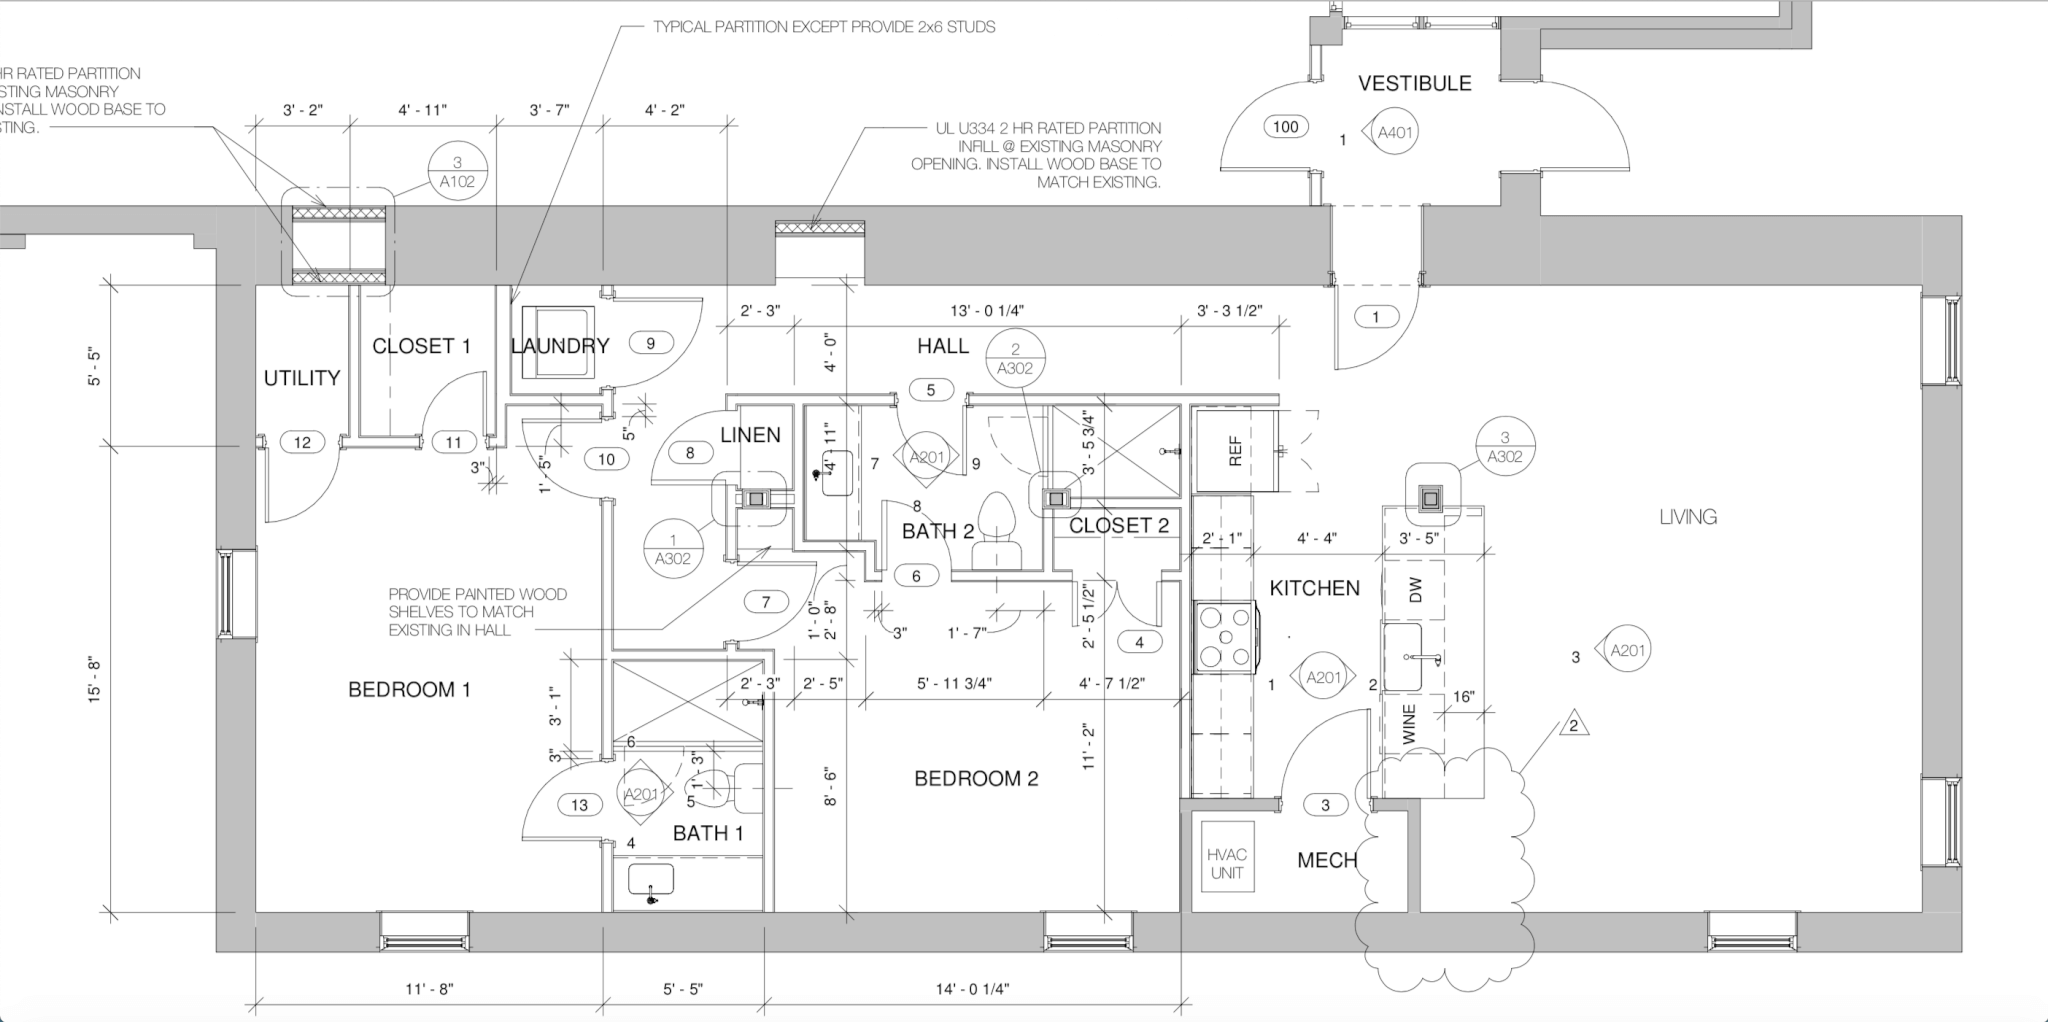 Suite 100 - Floor Plan